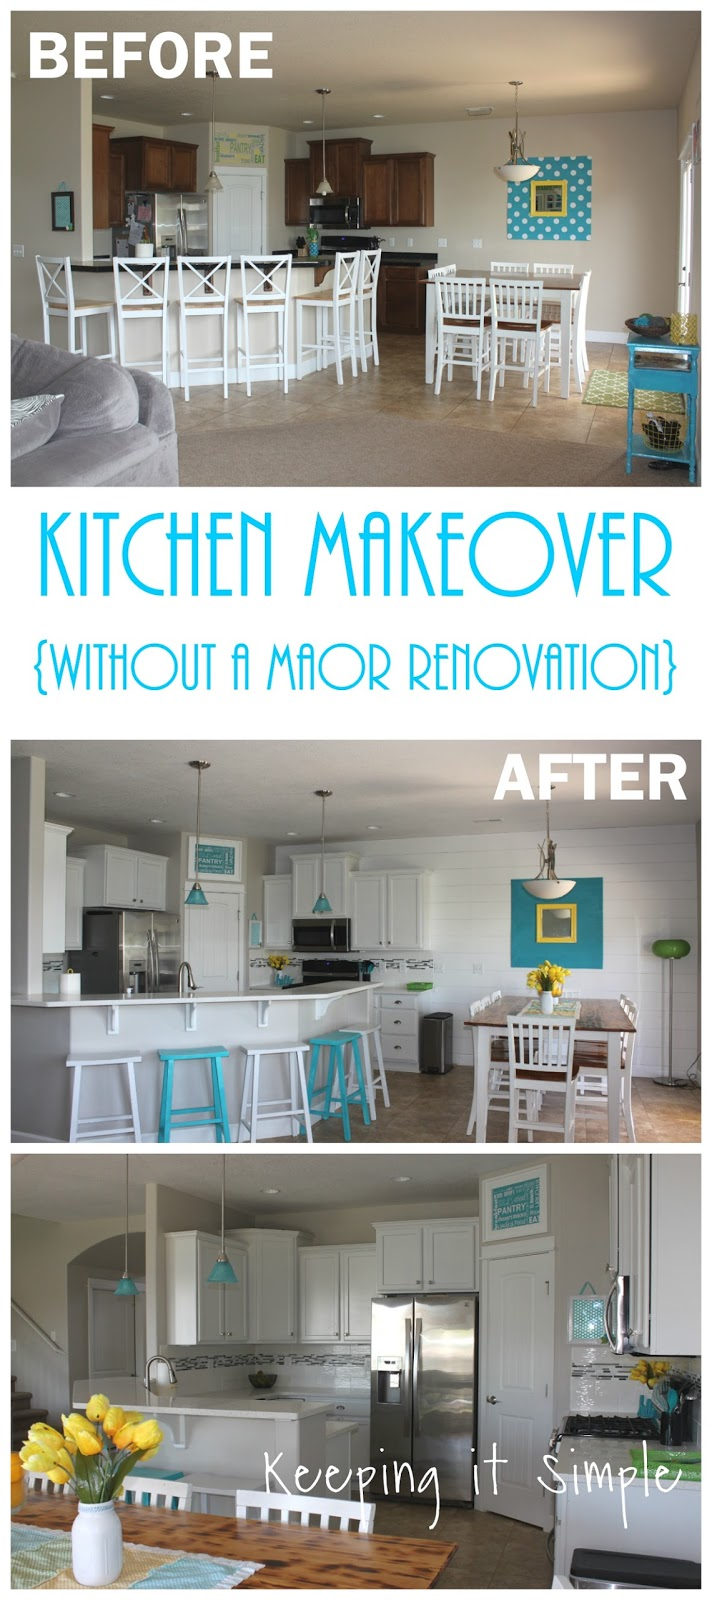 Simple Kitchen Makeover Ideas keeping it simple: kitchen makeover ideas without a major renovation